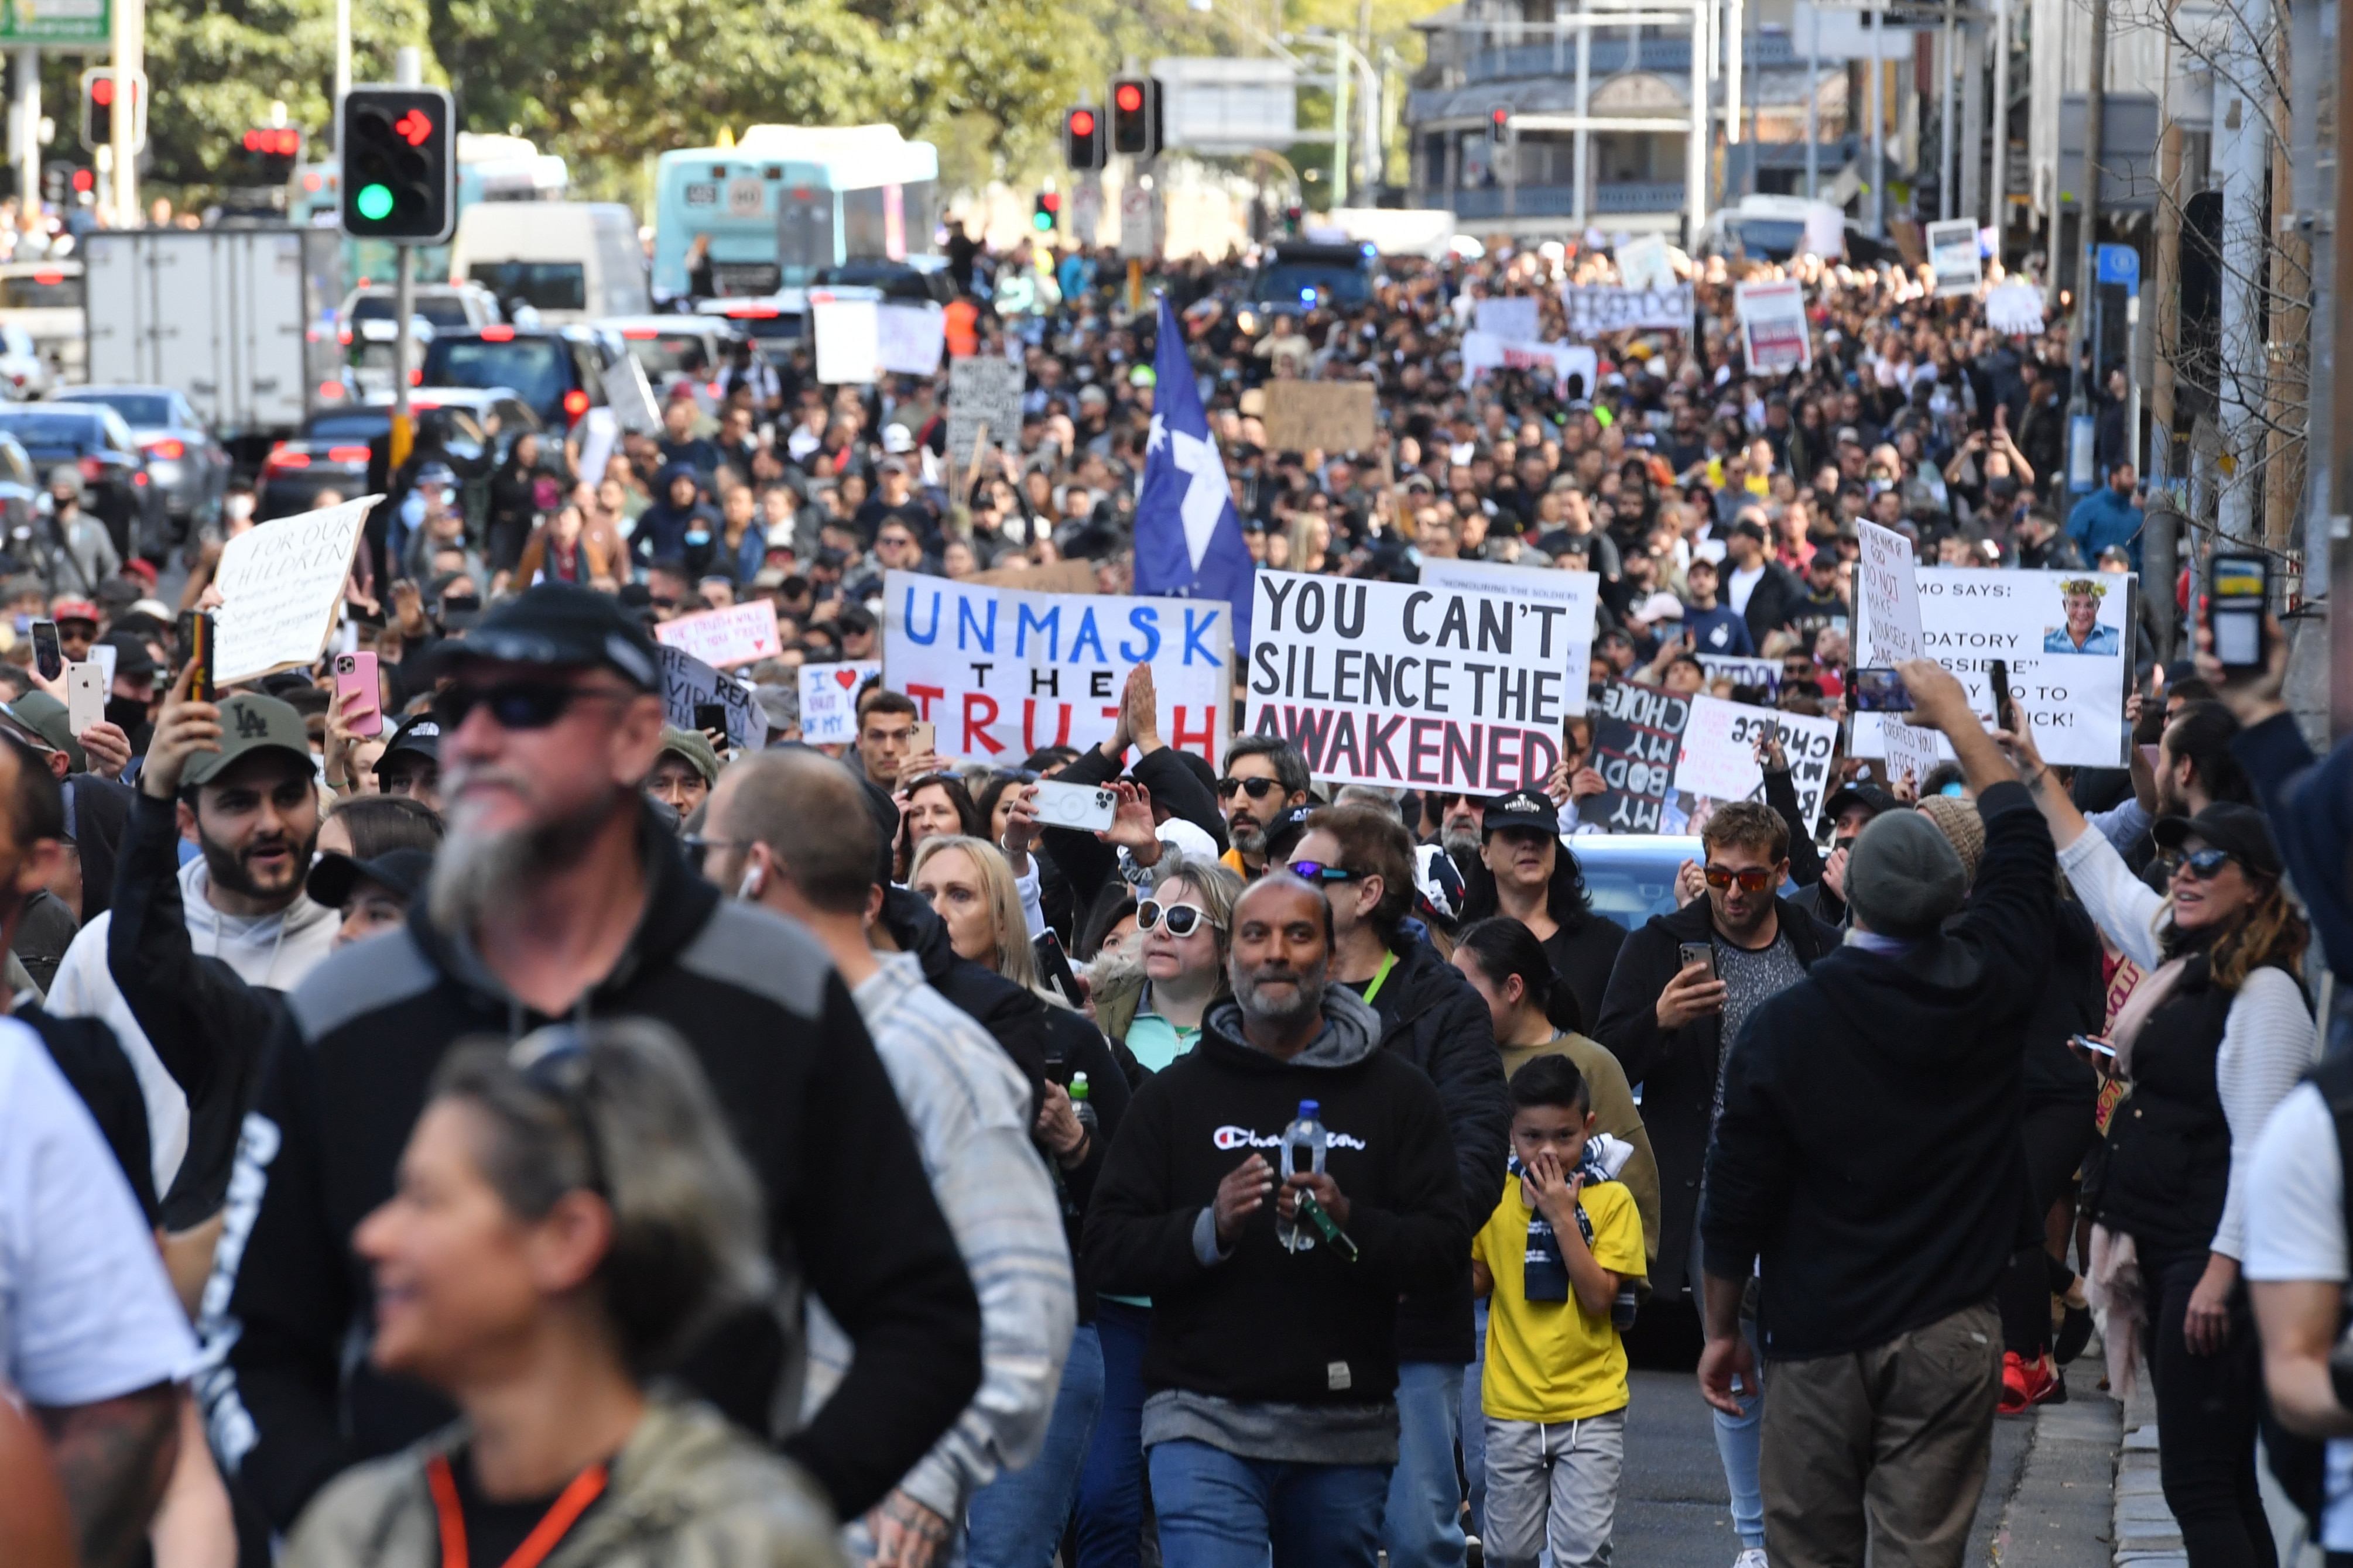 Protesters march along Broadway and George St towards Sydney Town Hall during the 'World Wide Rally For Freedom' anti-lockdown rally at Hyde Park in Sydney, Saturday, July 24, 2021. (AAP Image/Mick Tsikas) NO ARCHIVING